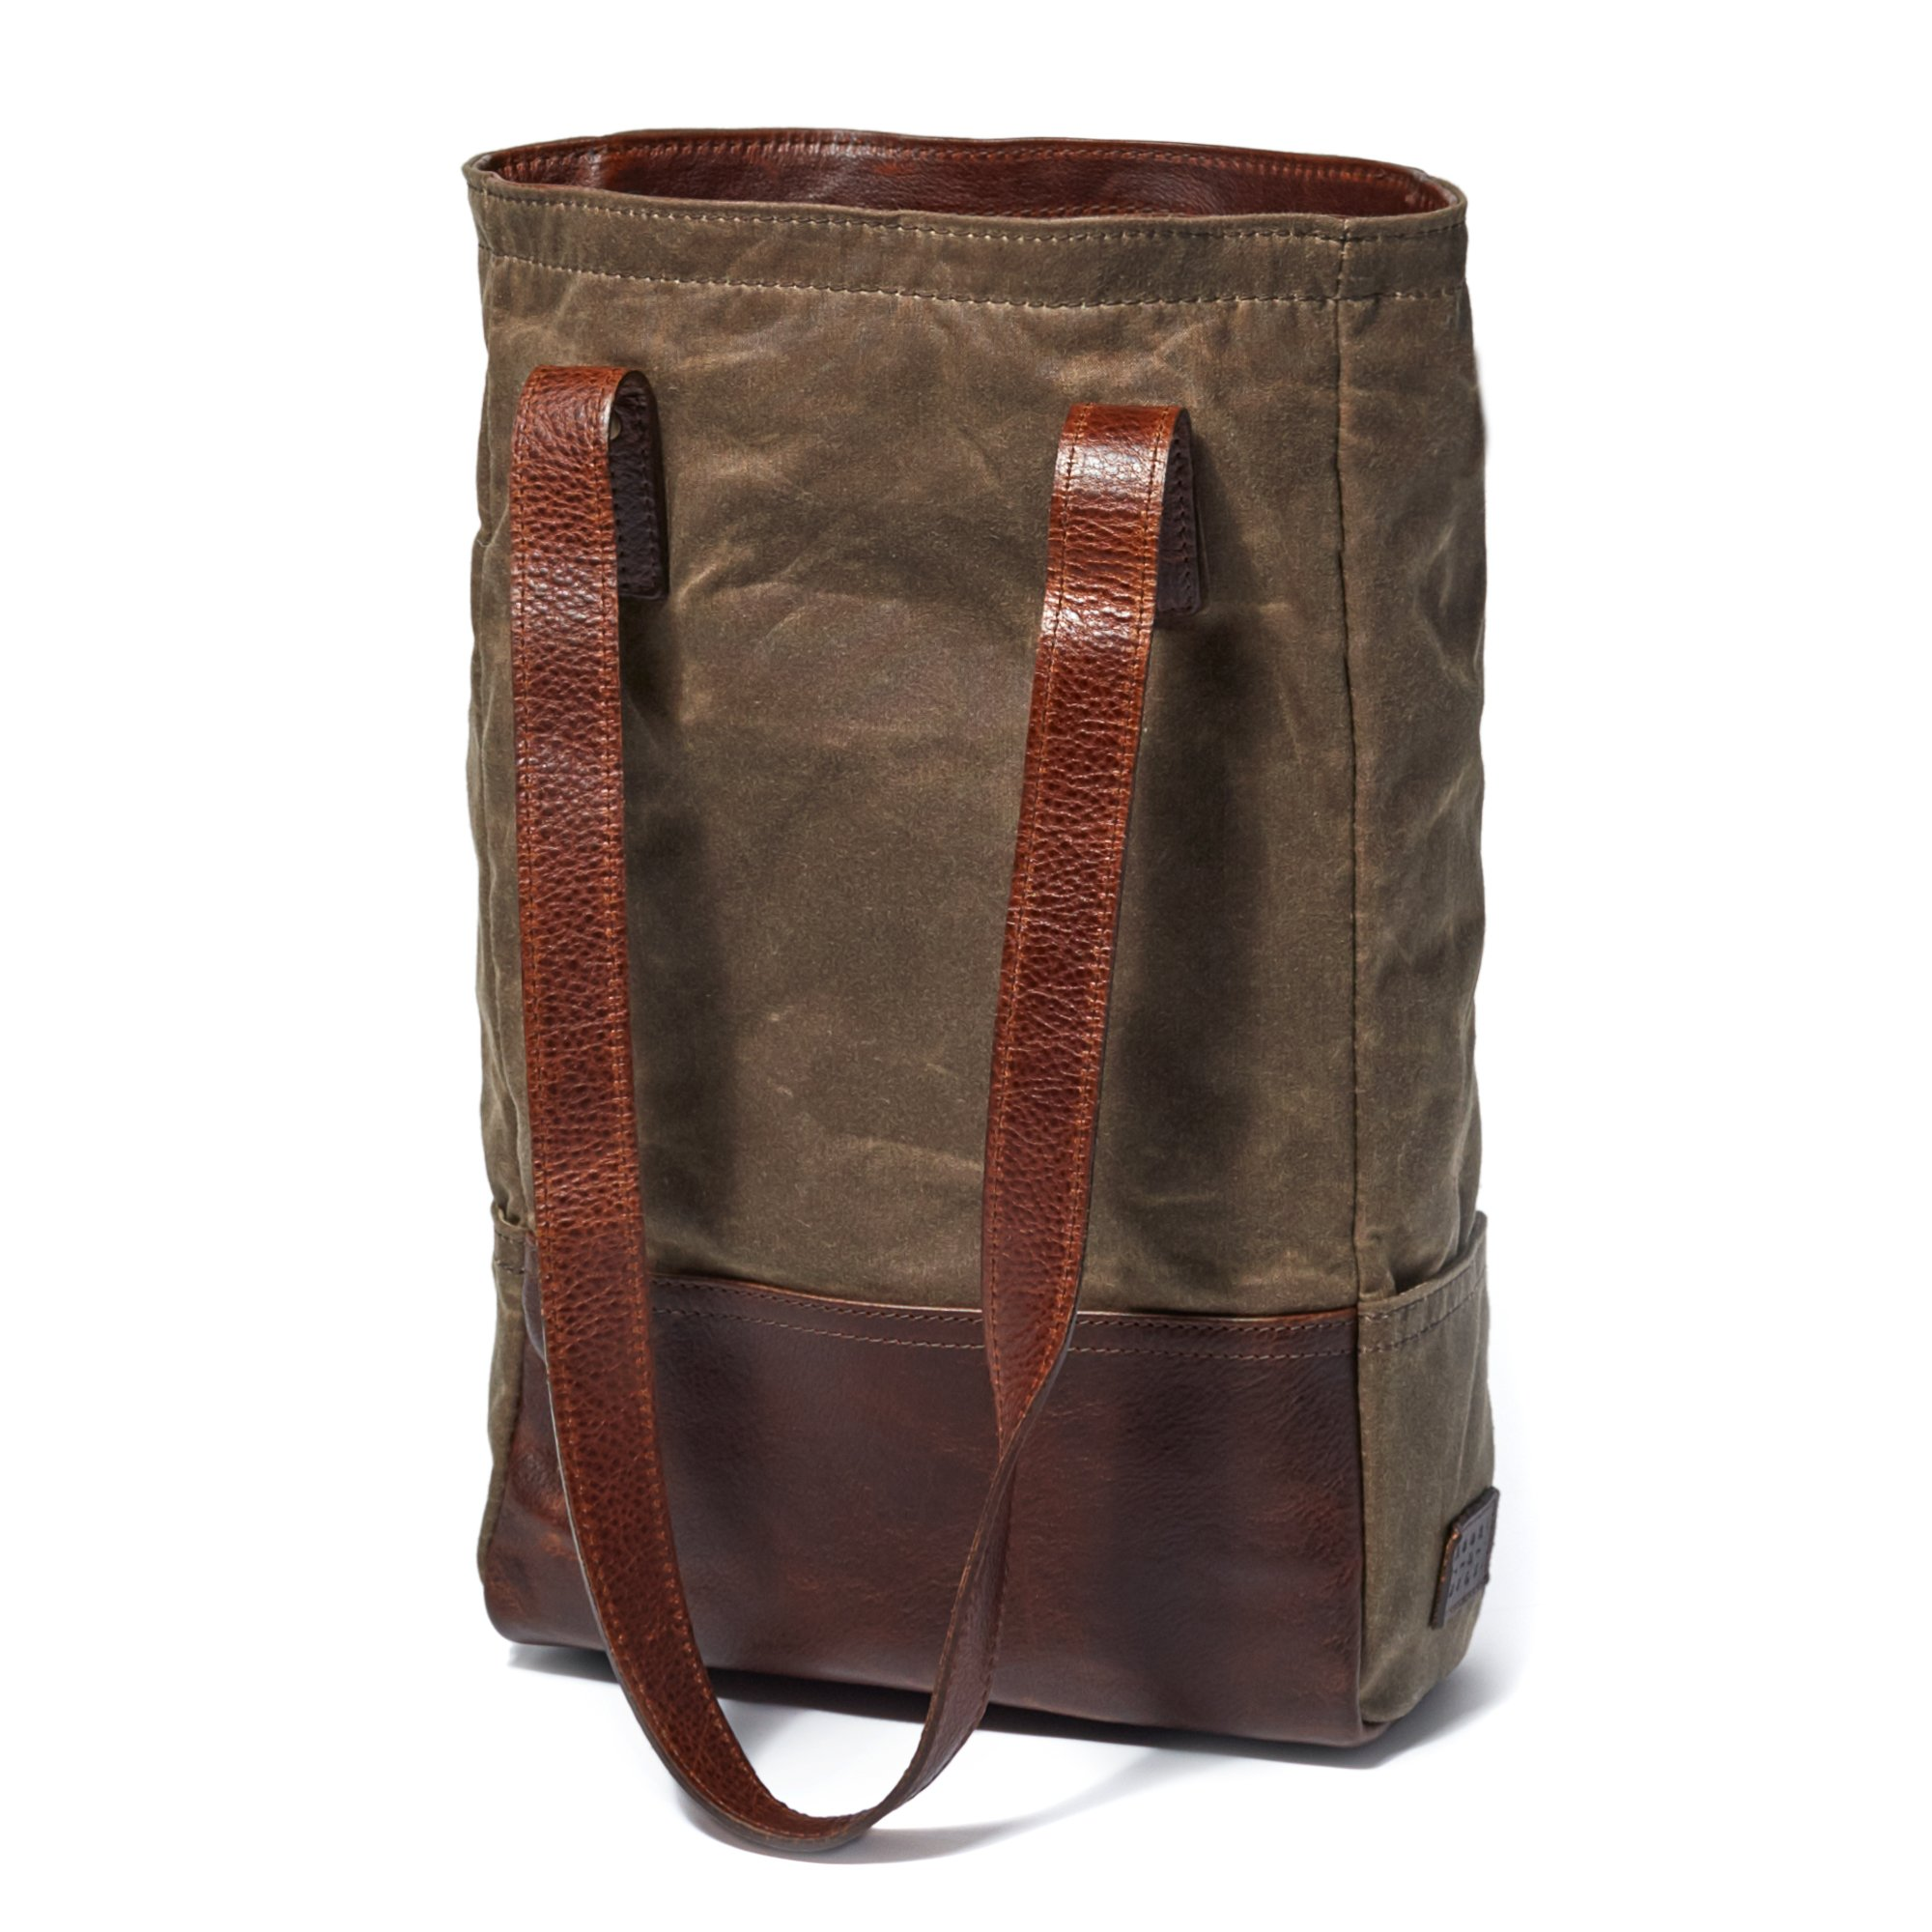 Moore and Giles Waxwear Rangertan Petty Wine Bottle Tote